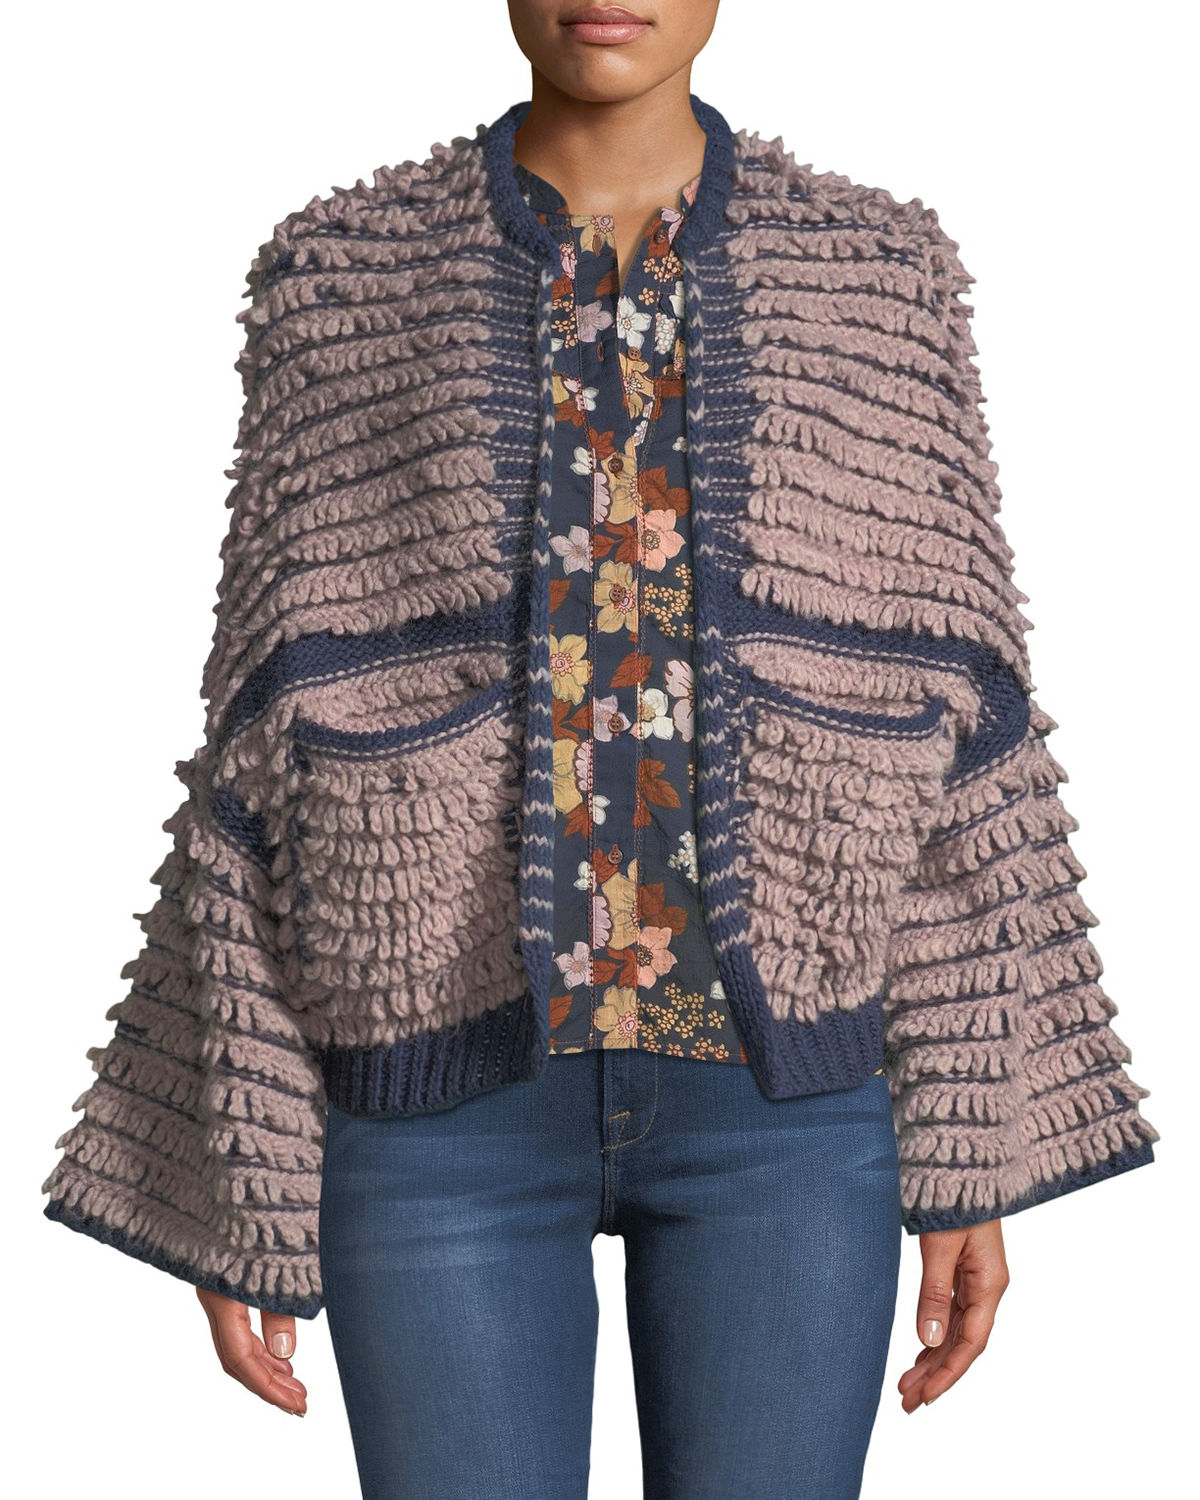 Alice Oversized Cardigan Sweater